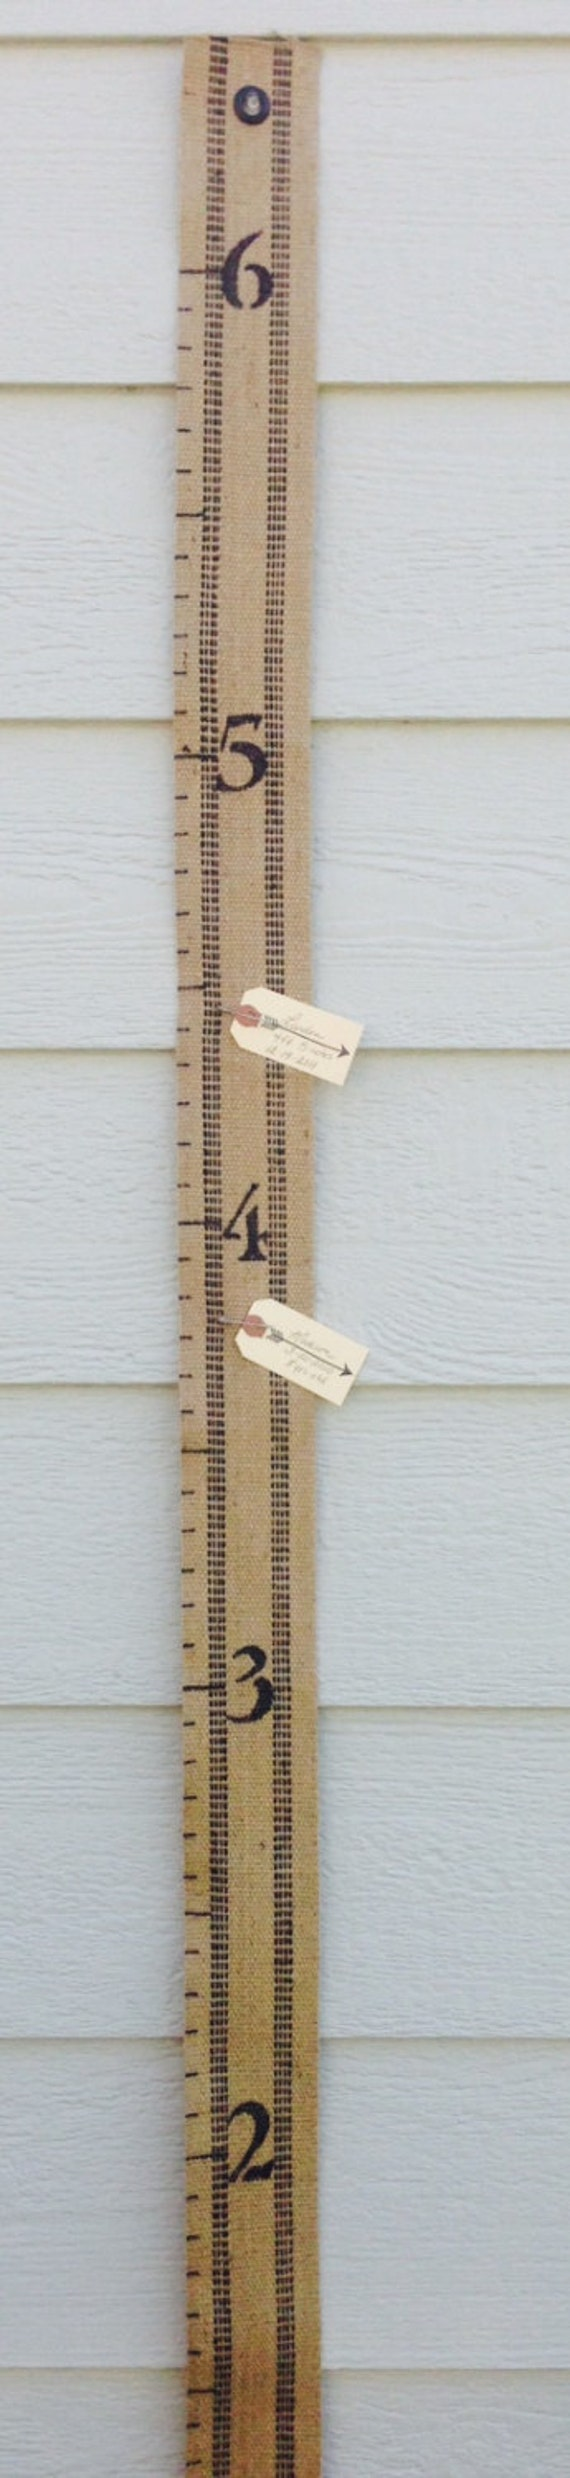 Fabric Jute Growth Chart For Kids 6 Foot Childs Height Etsy